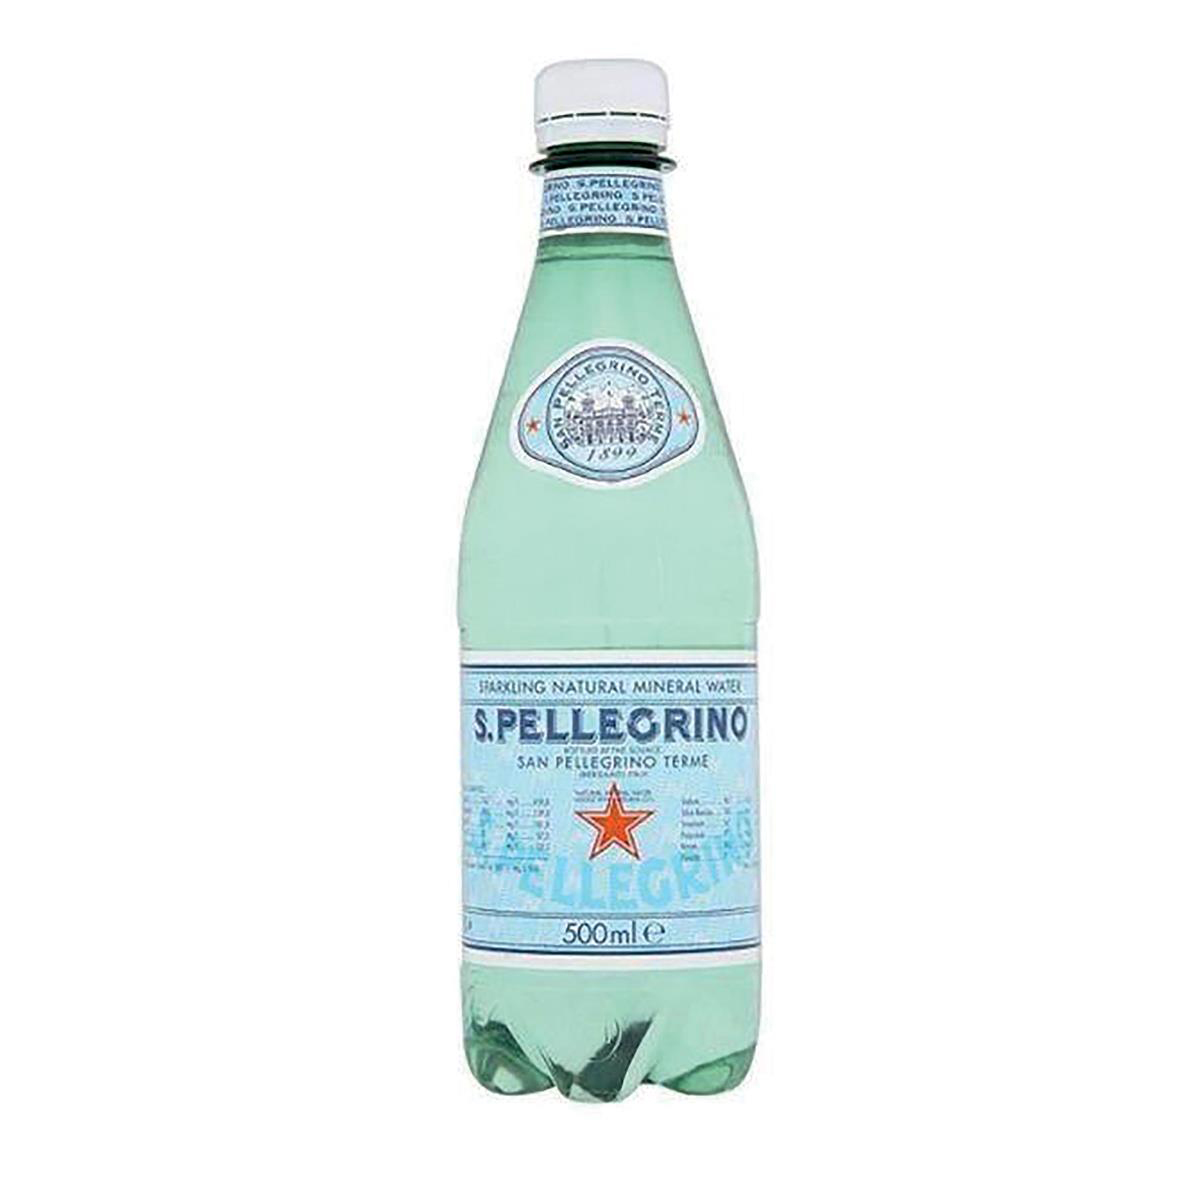 San Pellegrino Sparkling Mineral Water Bottle Plastic 500ml Ref 12132530 [Pack 24]